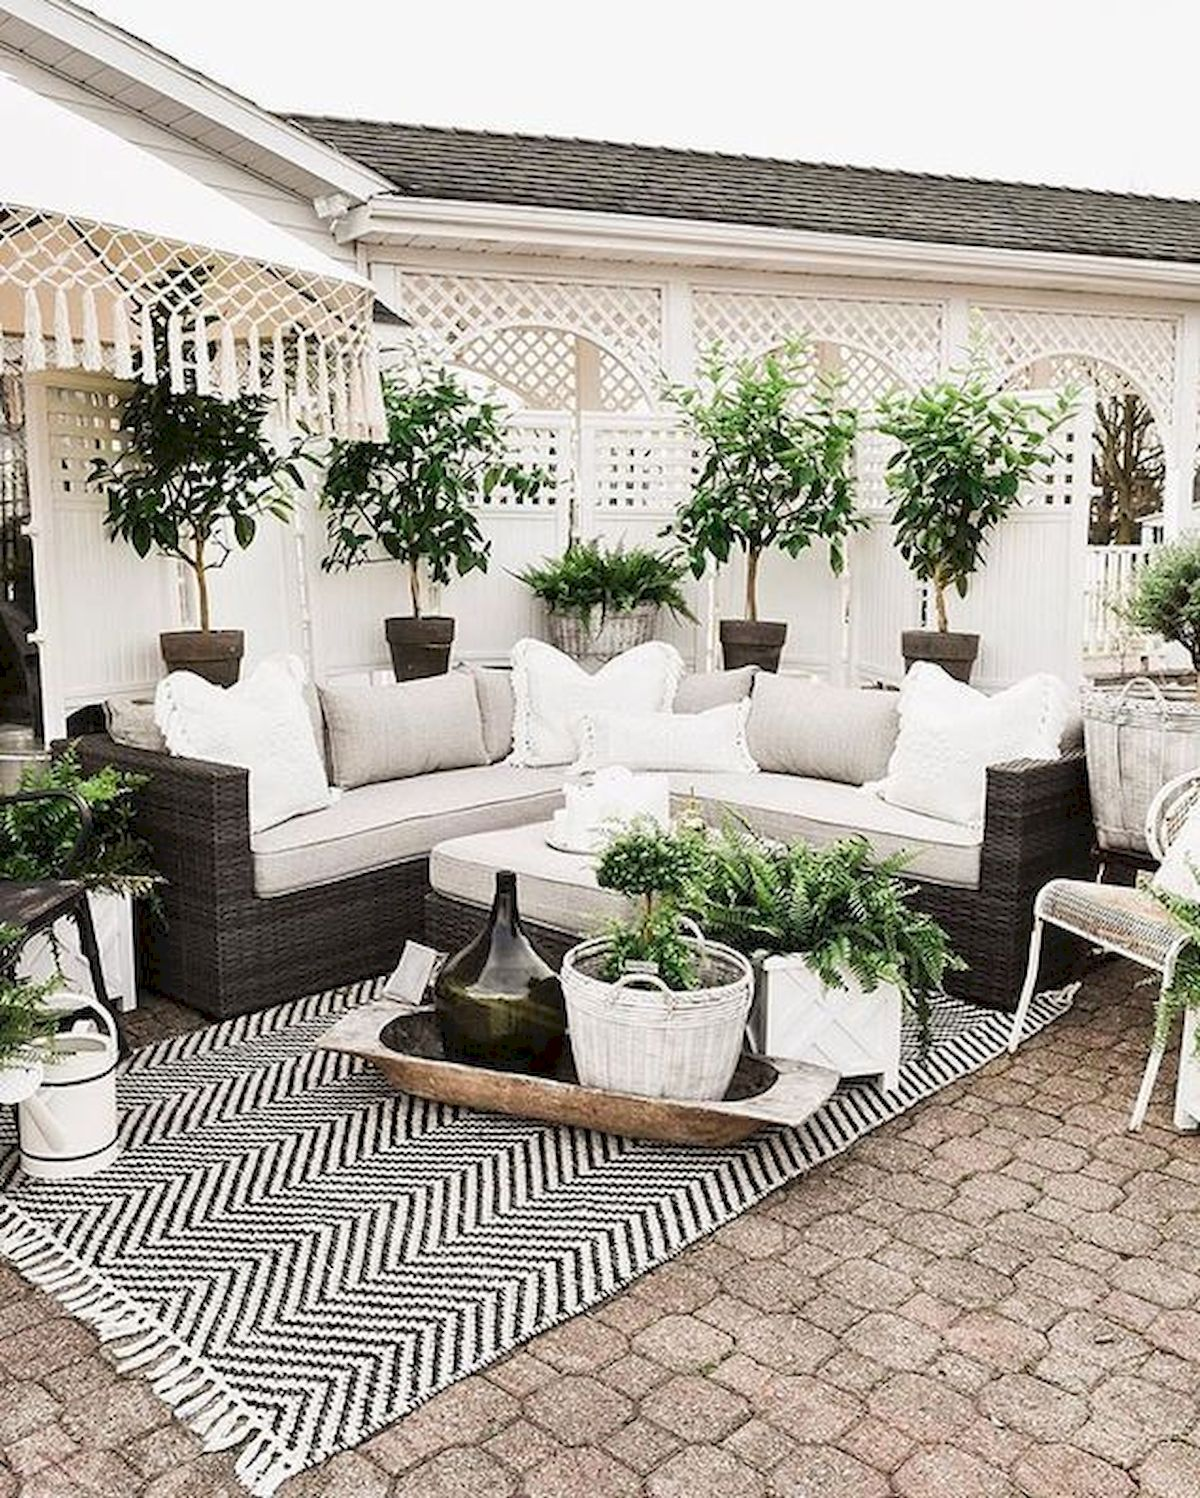 50 Awesome Modern Backyard Garden Design Ideas With Hanging Plants (46)